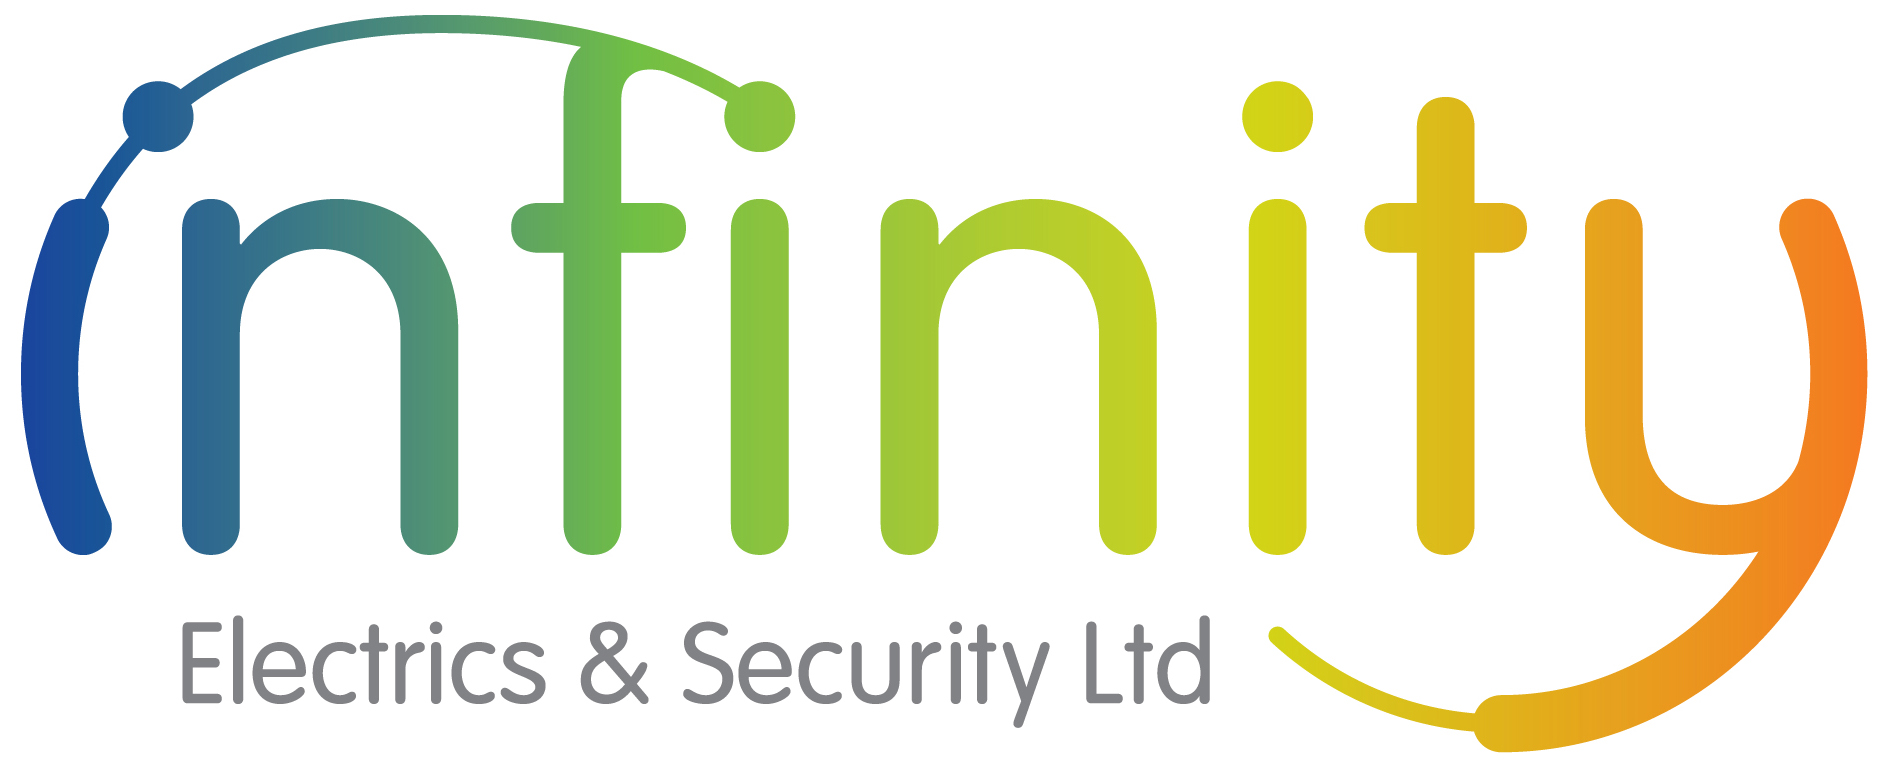 Infinity Electrics & Security Ltd Verified Logo